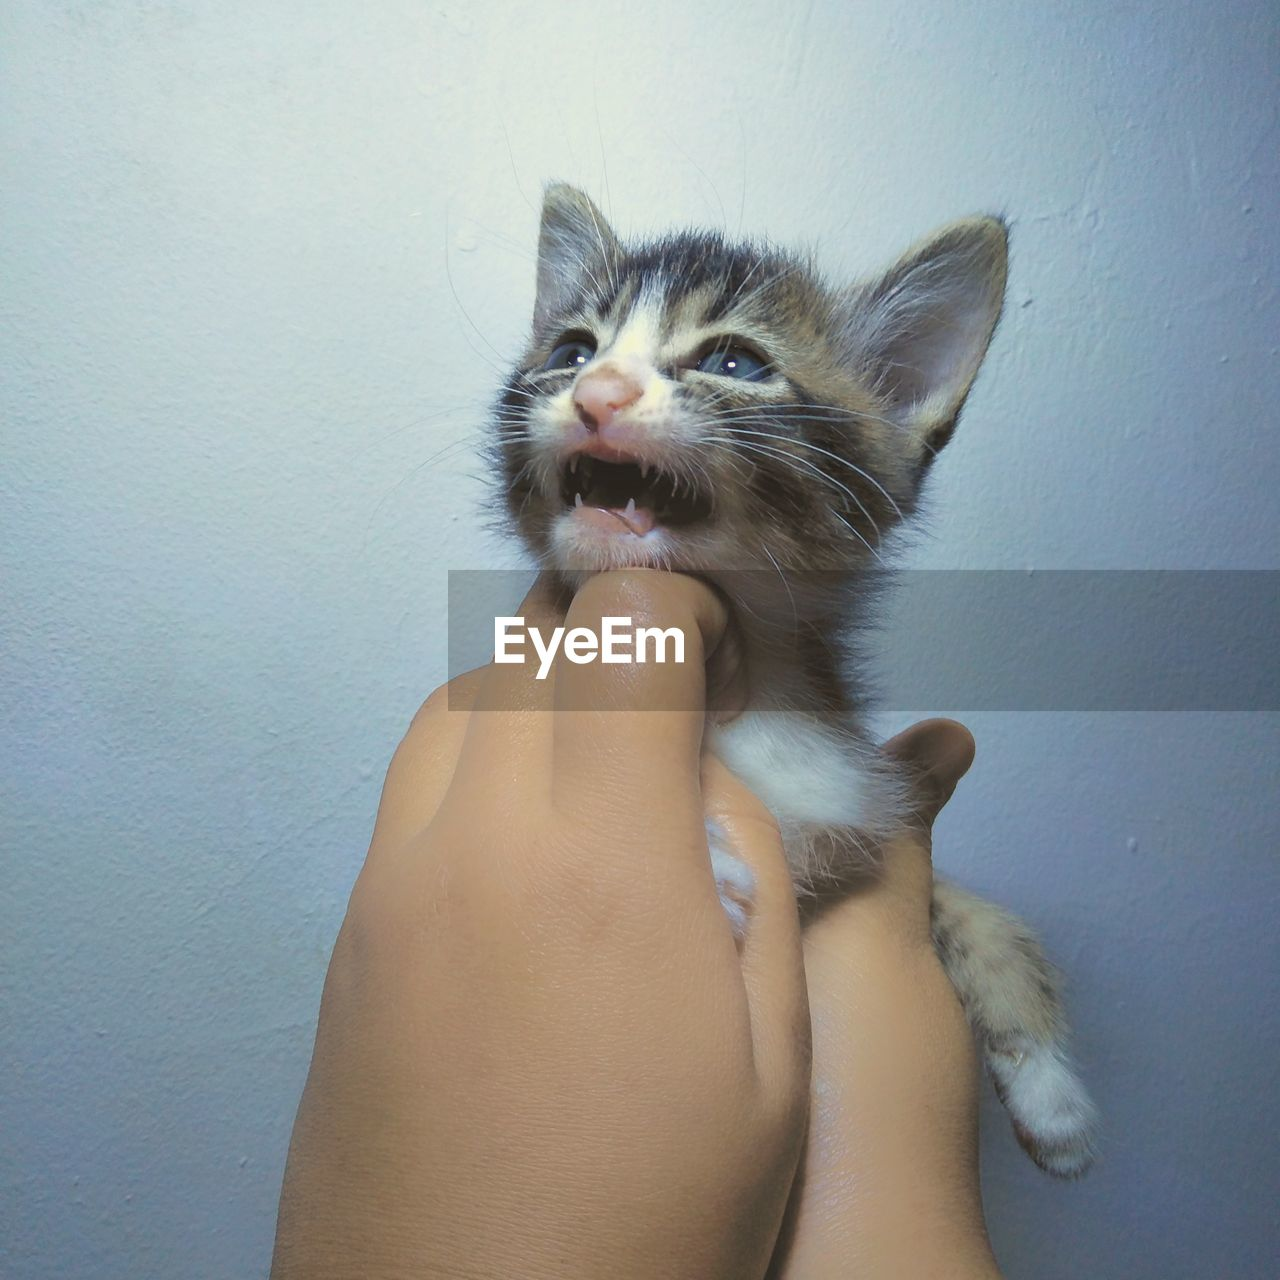 domestic, pets, mammal, domestic animals, one animal, cat, human hand, hand, feline, domestic cat, vertebrate, human body part, one person, personal perspective, real people, indoors, wall - building feature, body part, finger, whisker, kitten, pet owner, mouth open, human limb